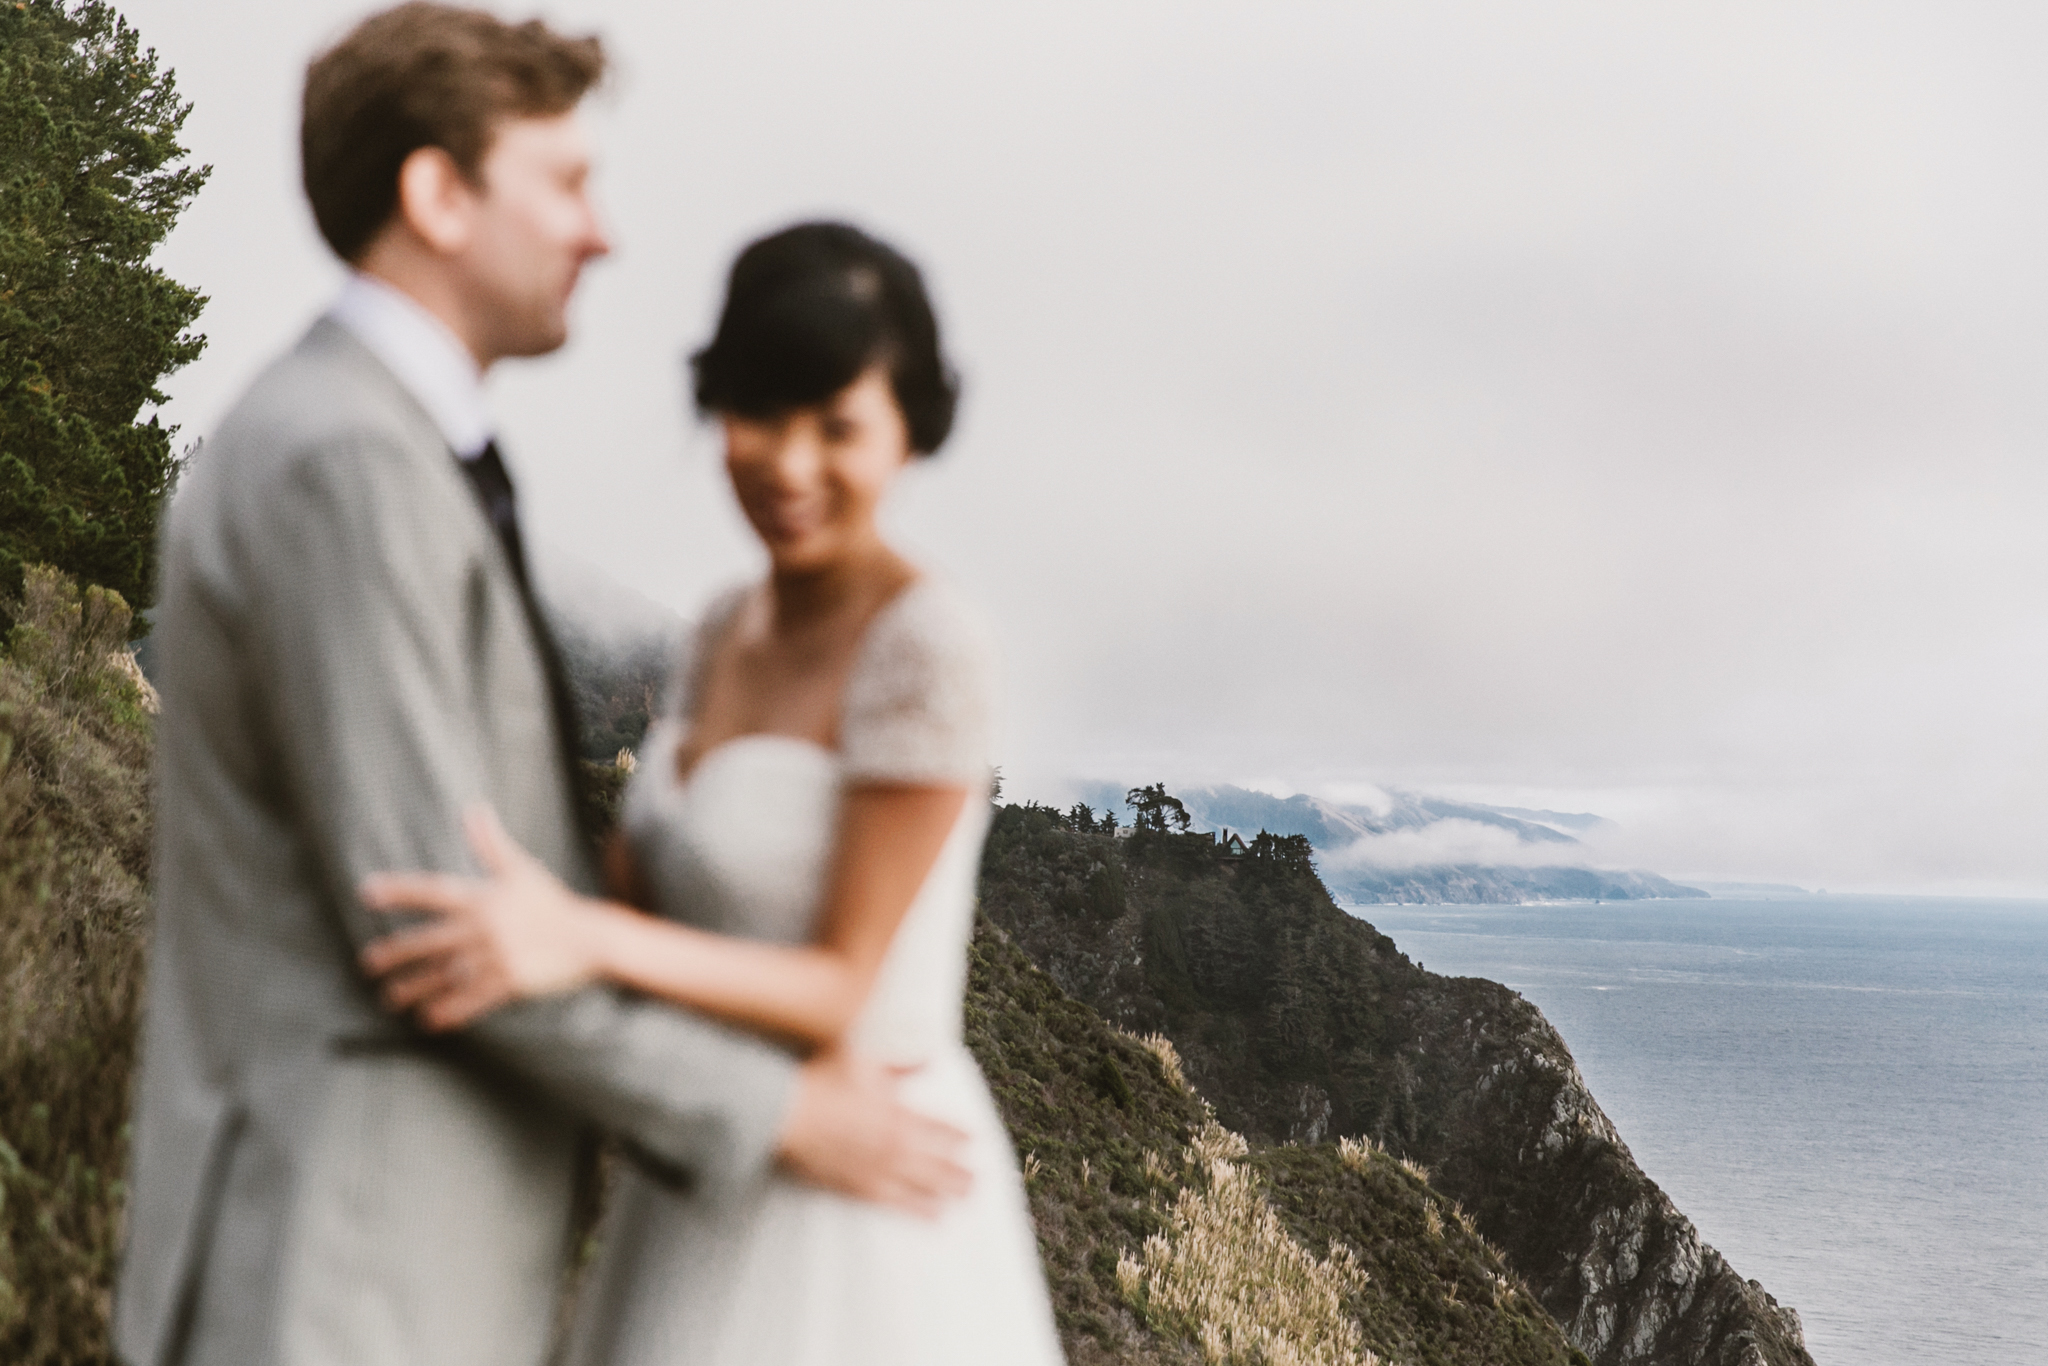 BIG SUR BAKERY WEDDING -10131